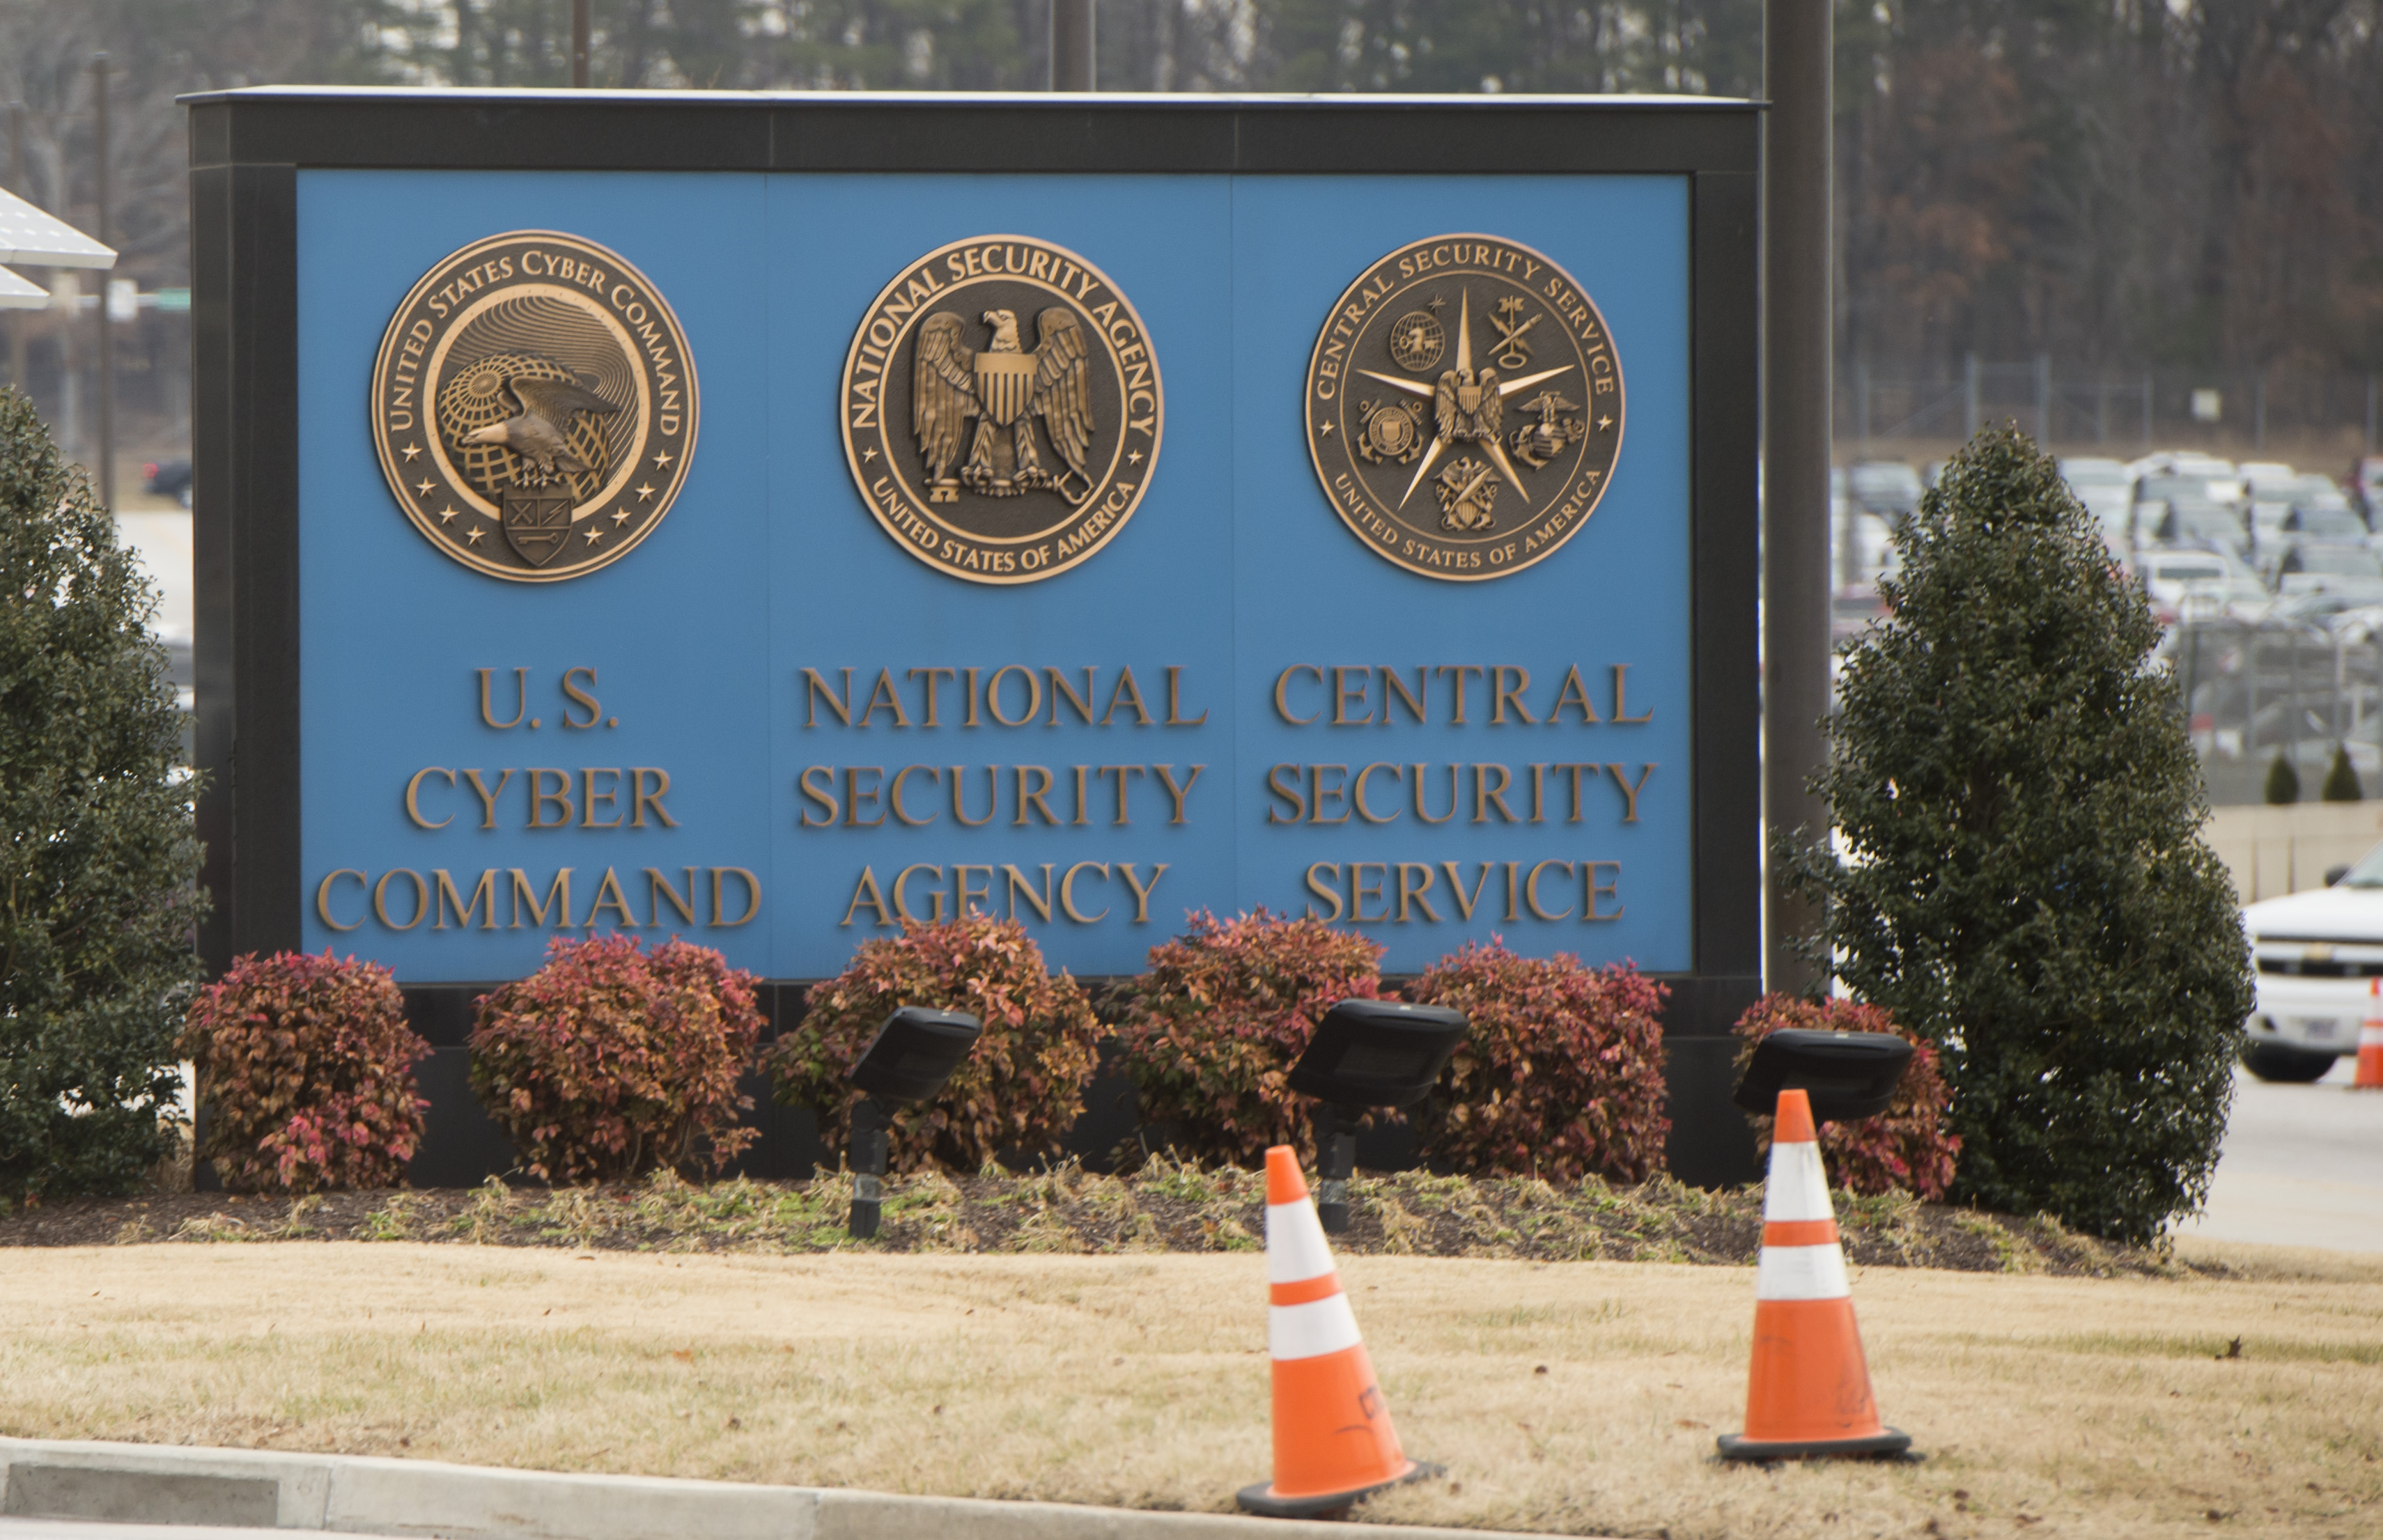 A sign for the National Security Agency (NSA), US Cyber Command and Central Security Service, is seen near the visitor's entrance to the headquarters of the National Security Agency (NSA) after a shooting incident at the entrance in Fort Meade, Maryland, February 14, 2018. (SAUL LOEB/AFP/Getty Images)